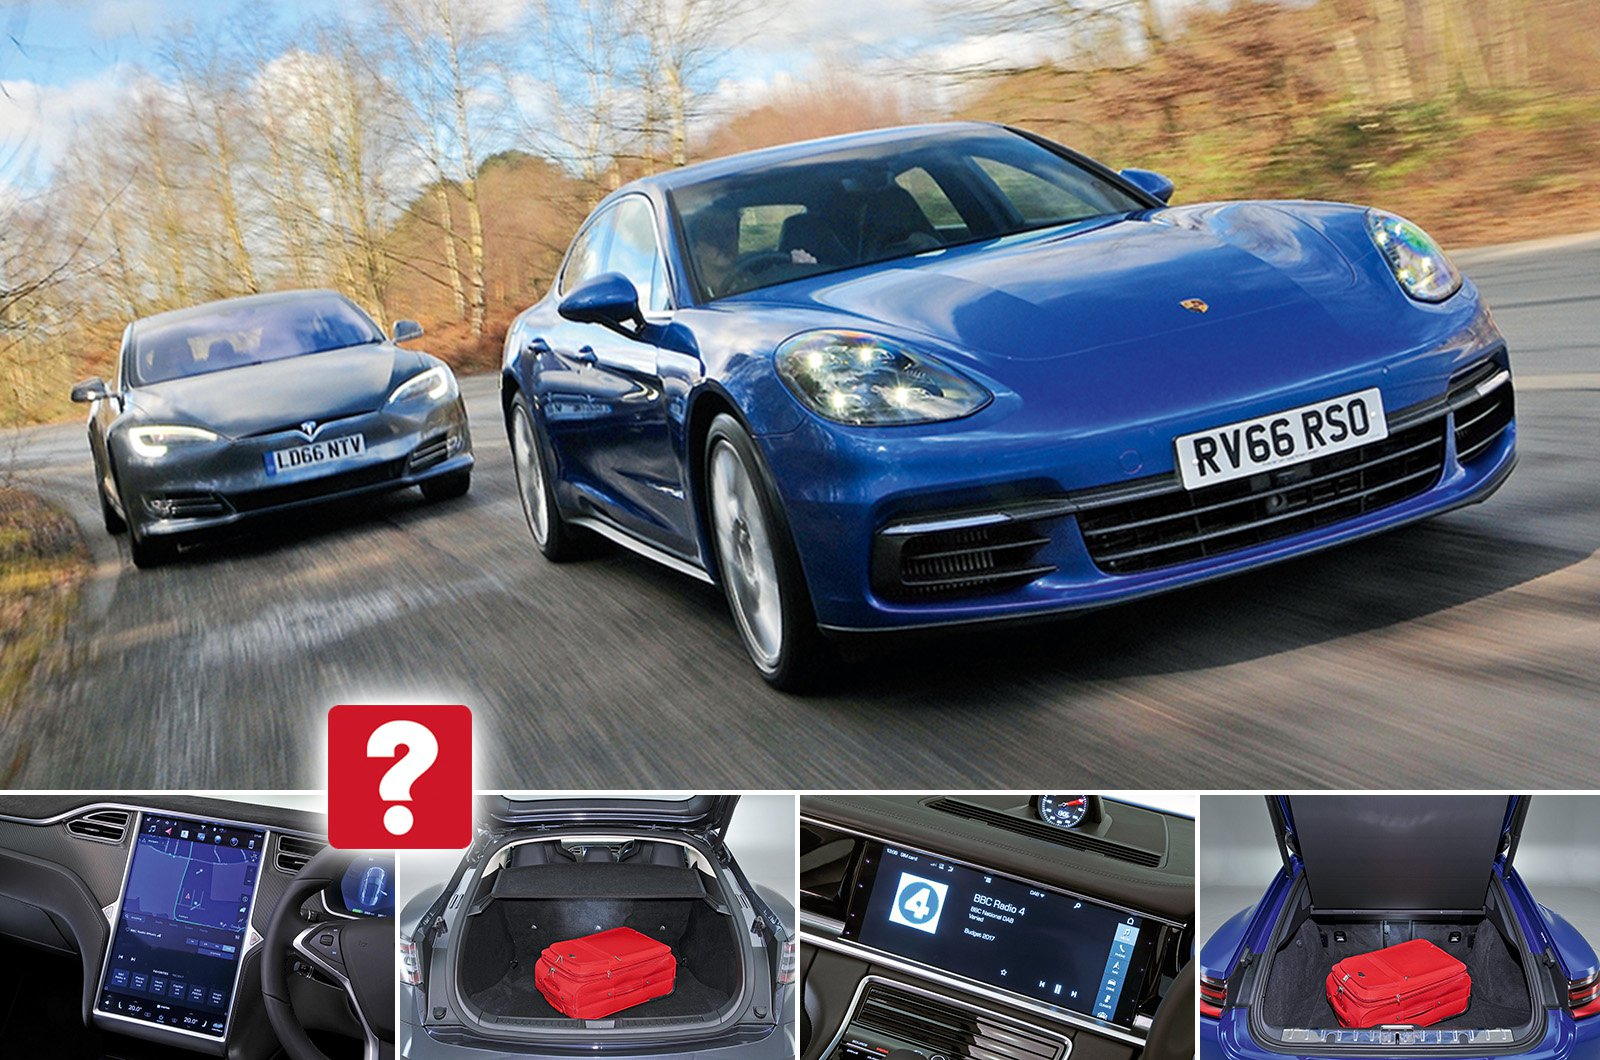 Used test: Porsche Panamera vs Tesla Model S